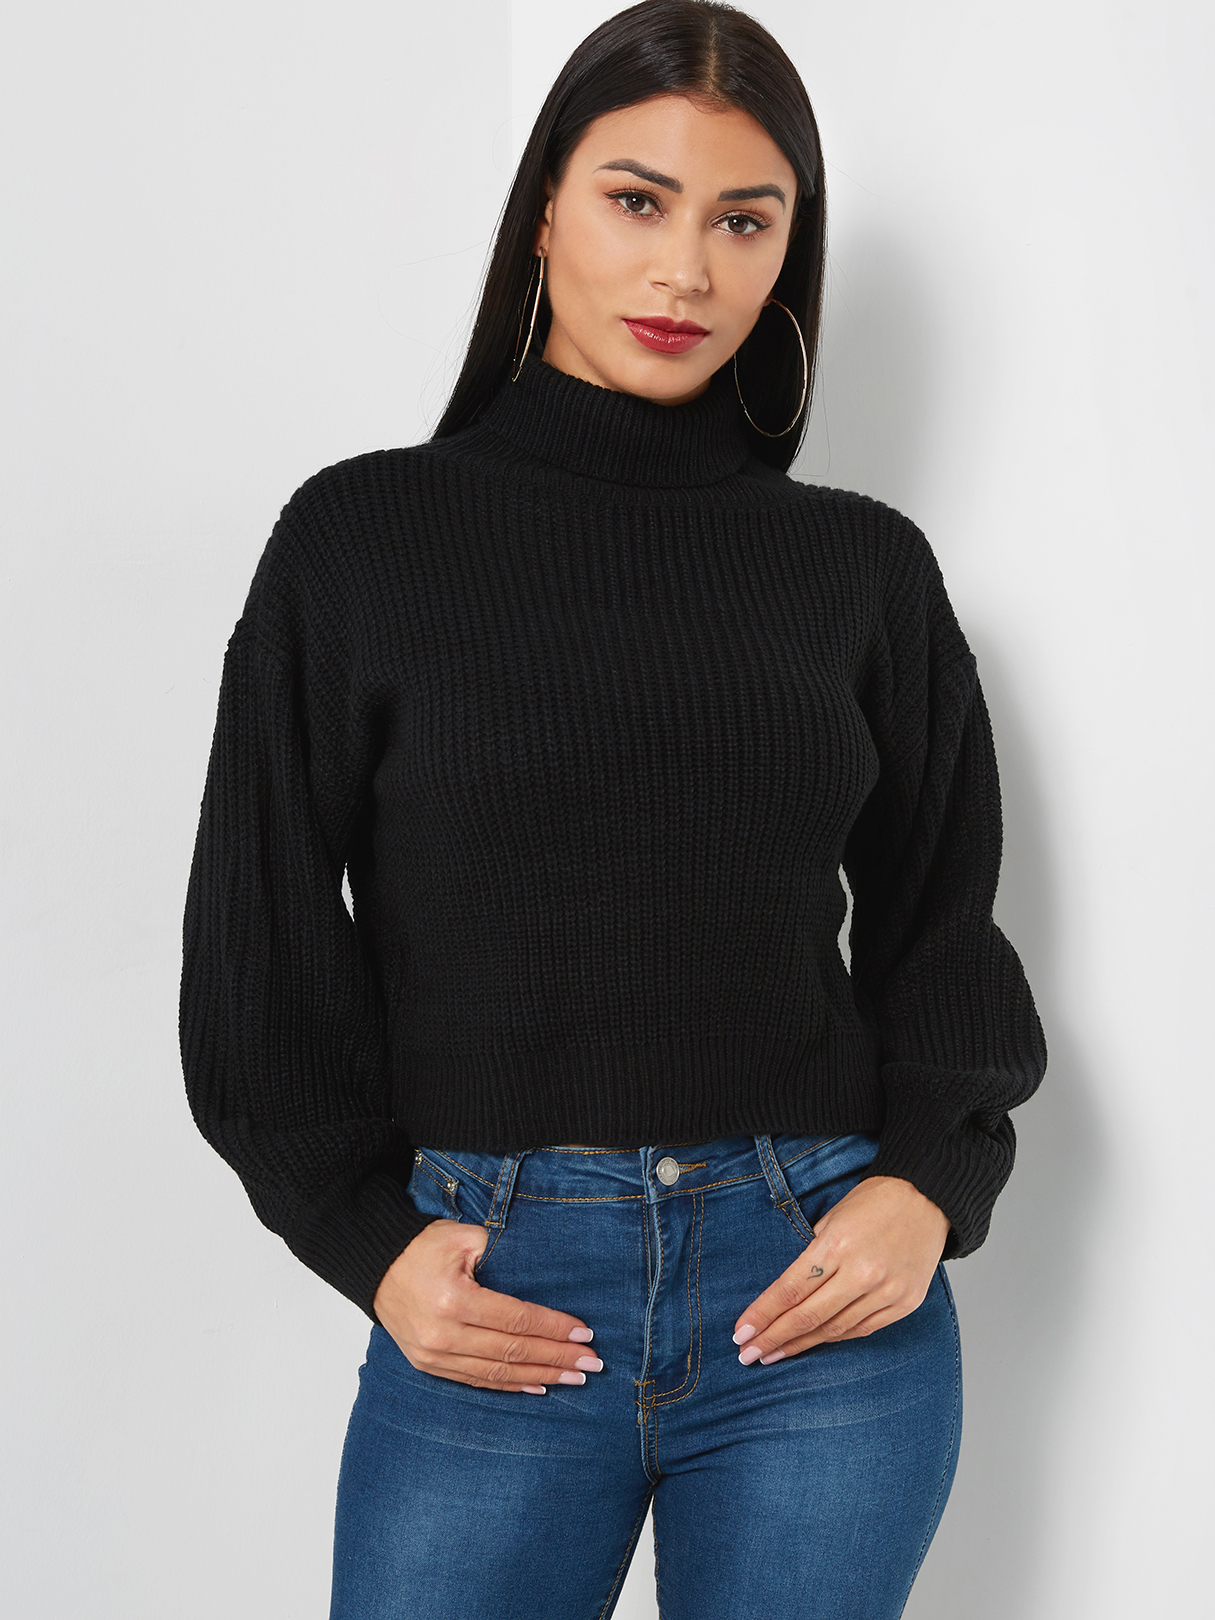 Black High Neck Long Sleeves Knitted Basic Sweater